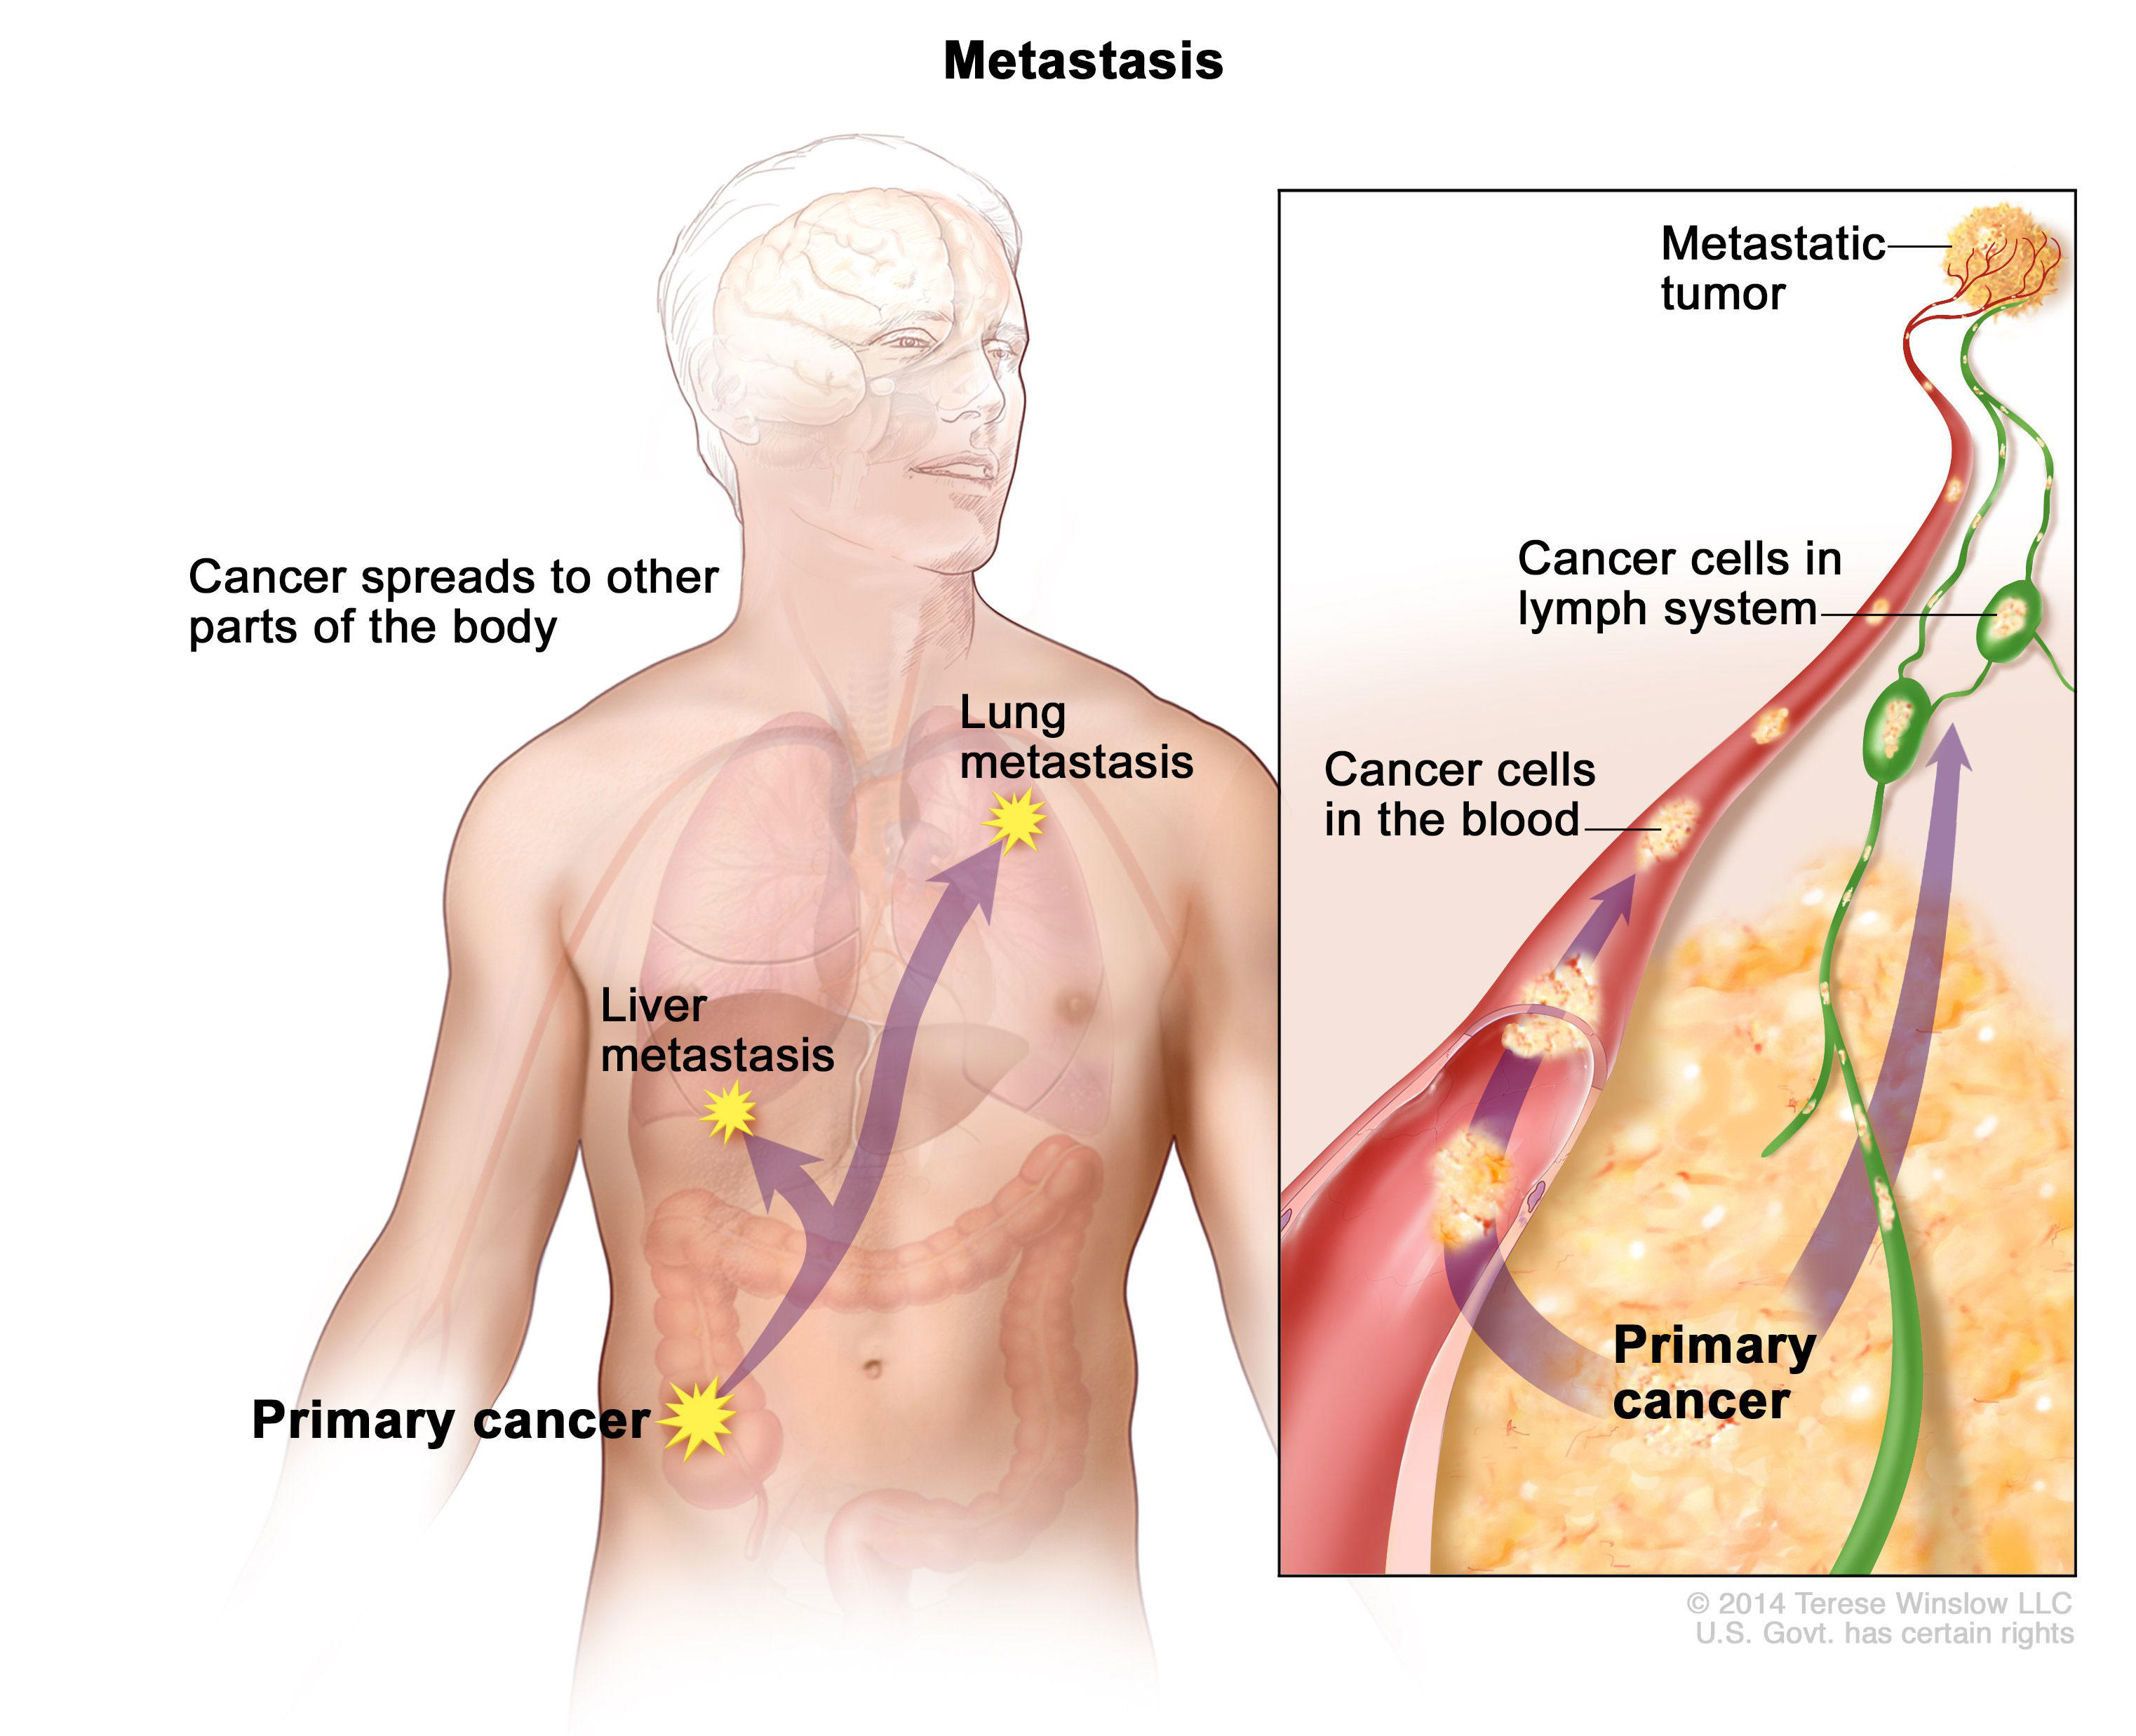 metastatic cancer causes